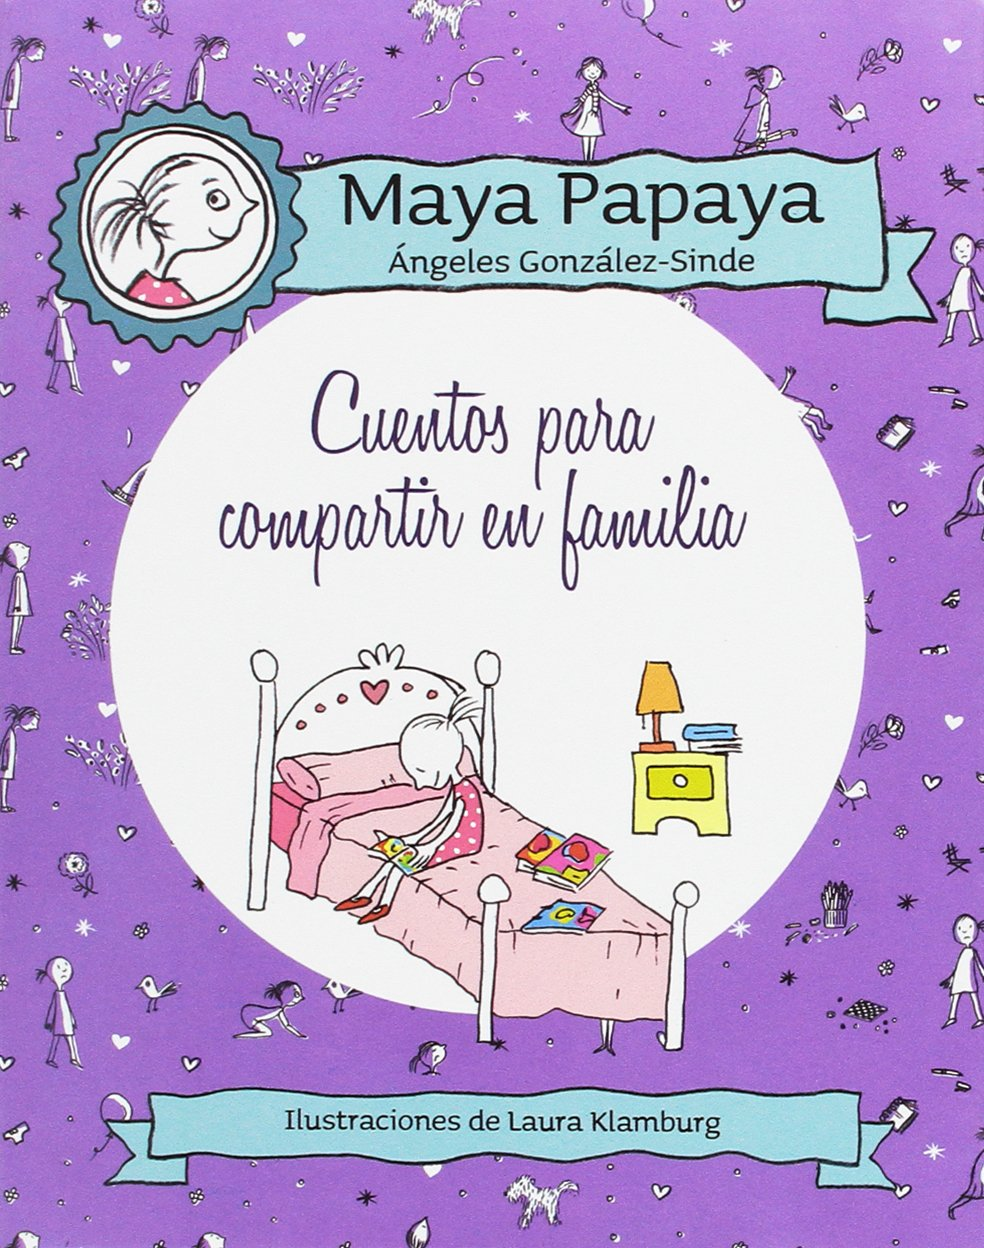 MAYA PAPAYA CAJA REGALO: GONZÁLEZ SINDE: 9788468326825: Amazon.com: Books